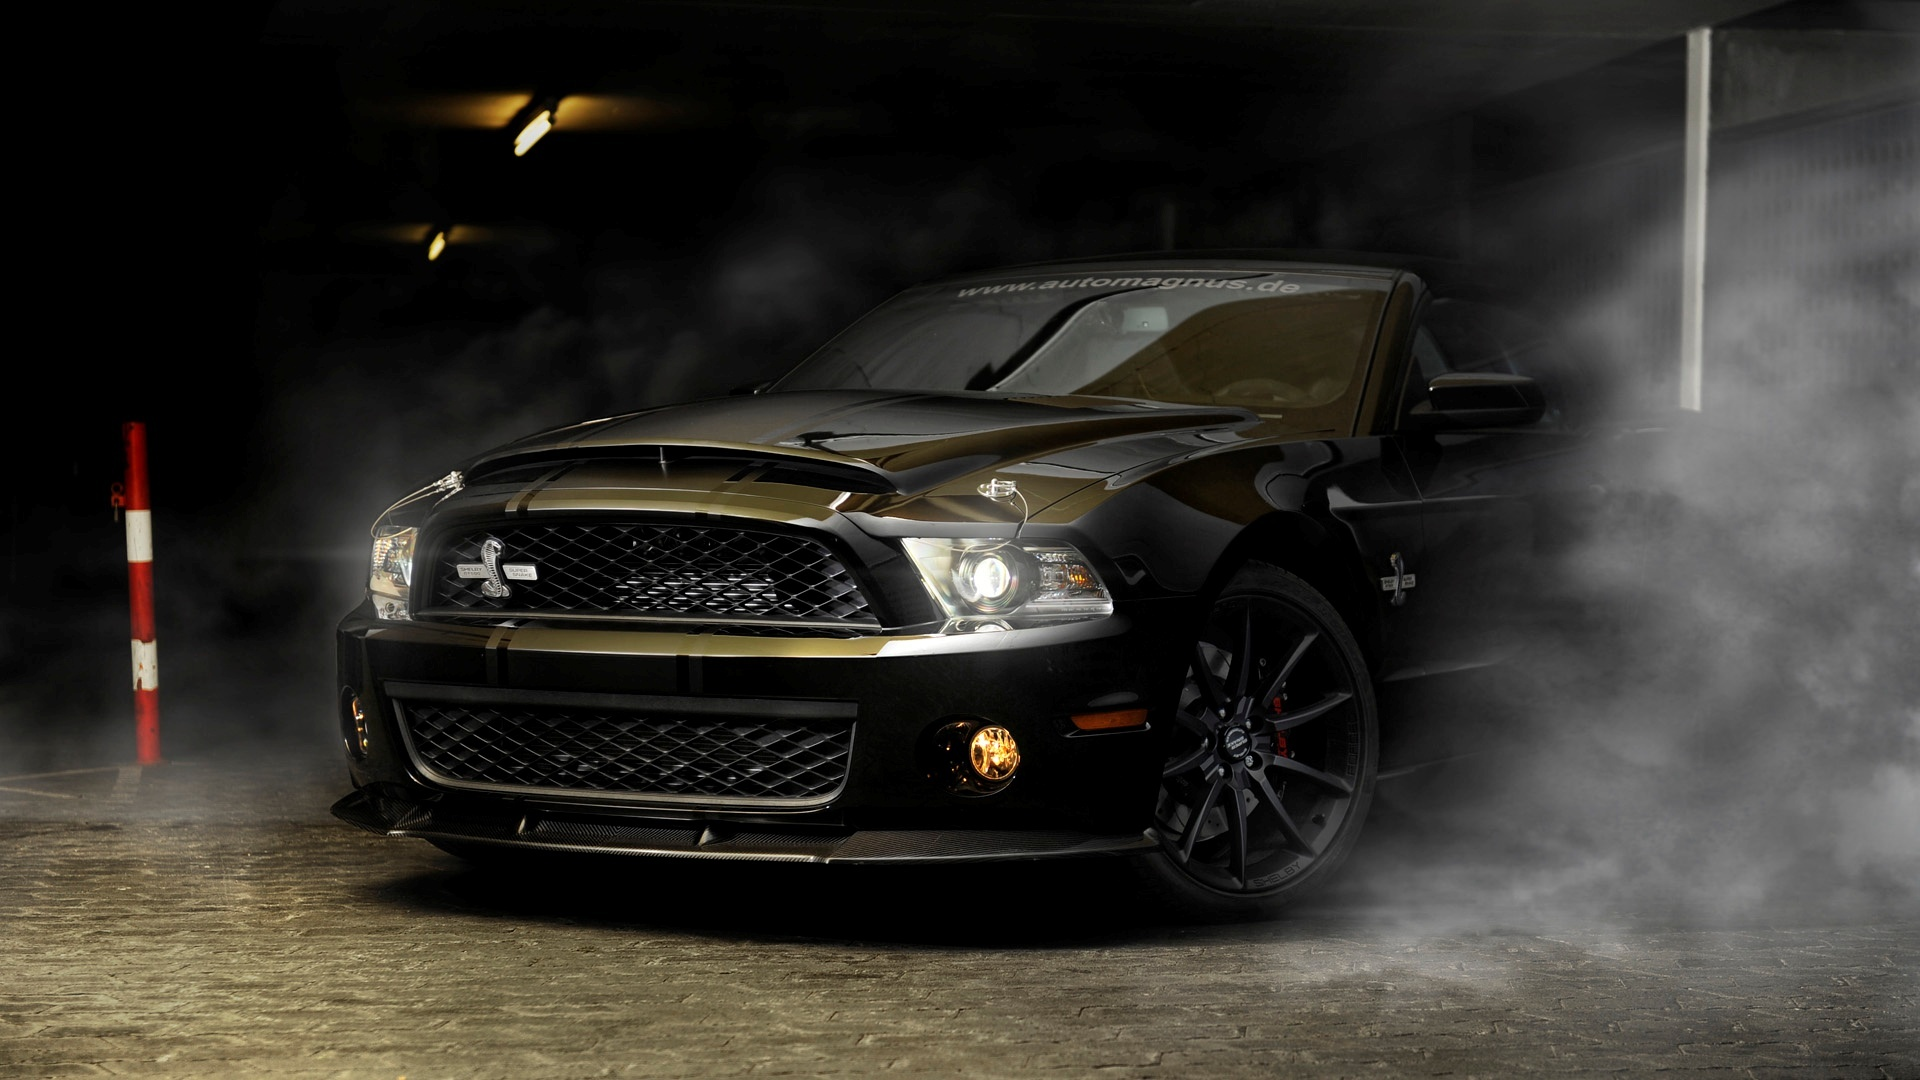 Ford Mustang GT500 Super Snake Shelby 1920 x 1080 Download Close 1920x1080